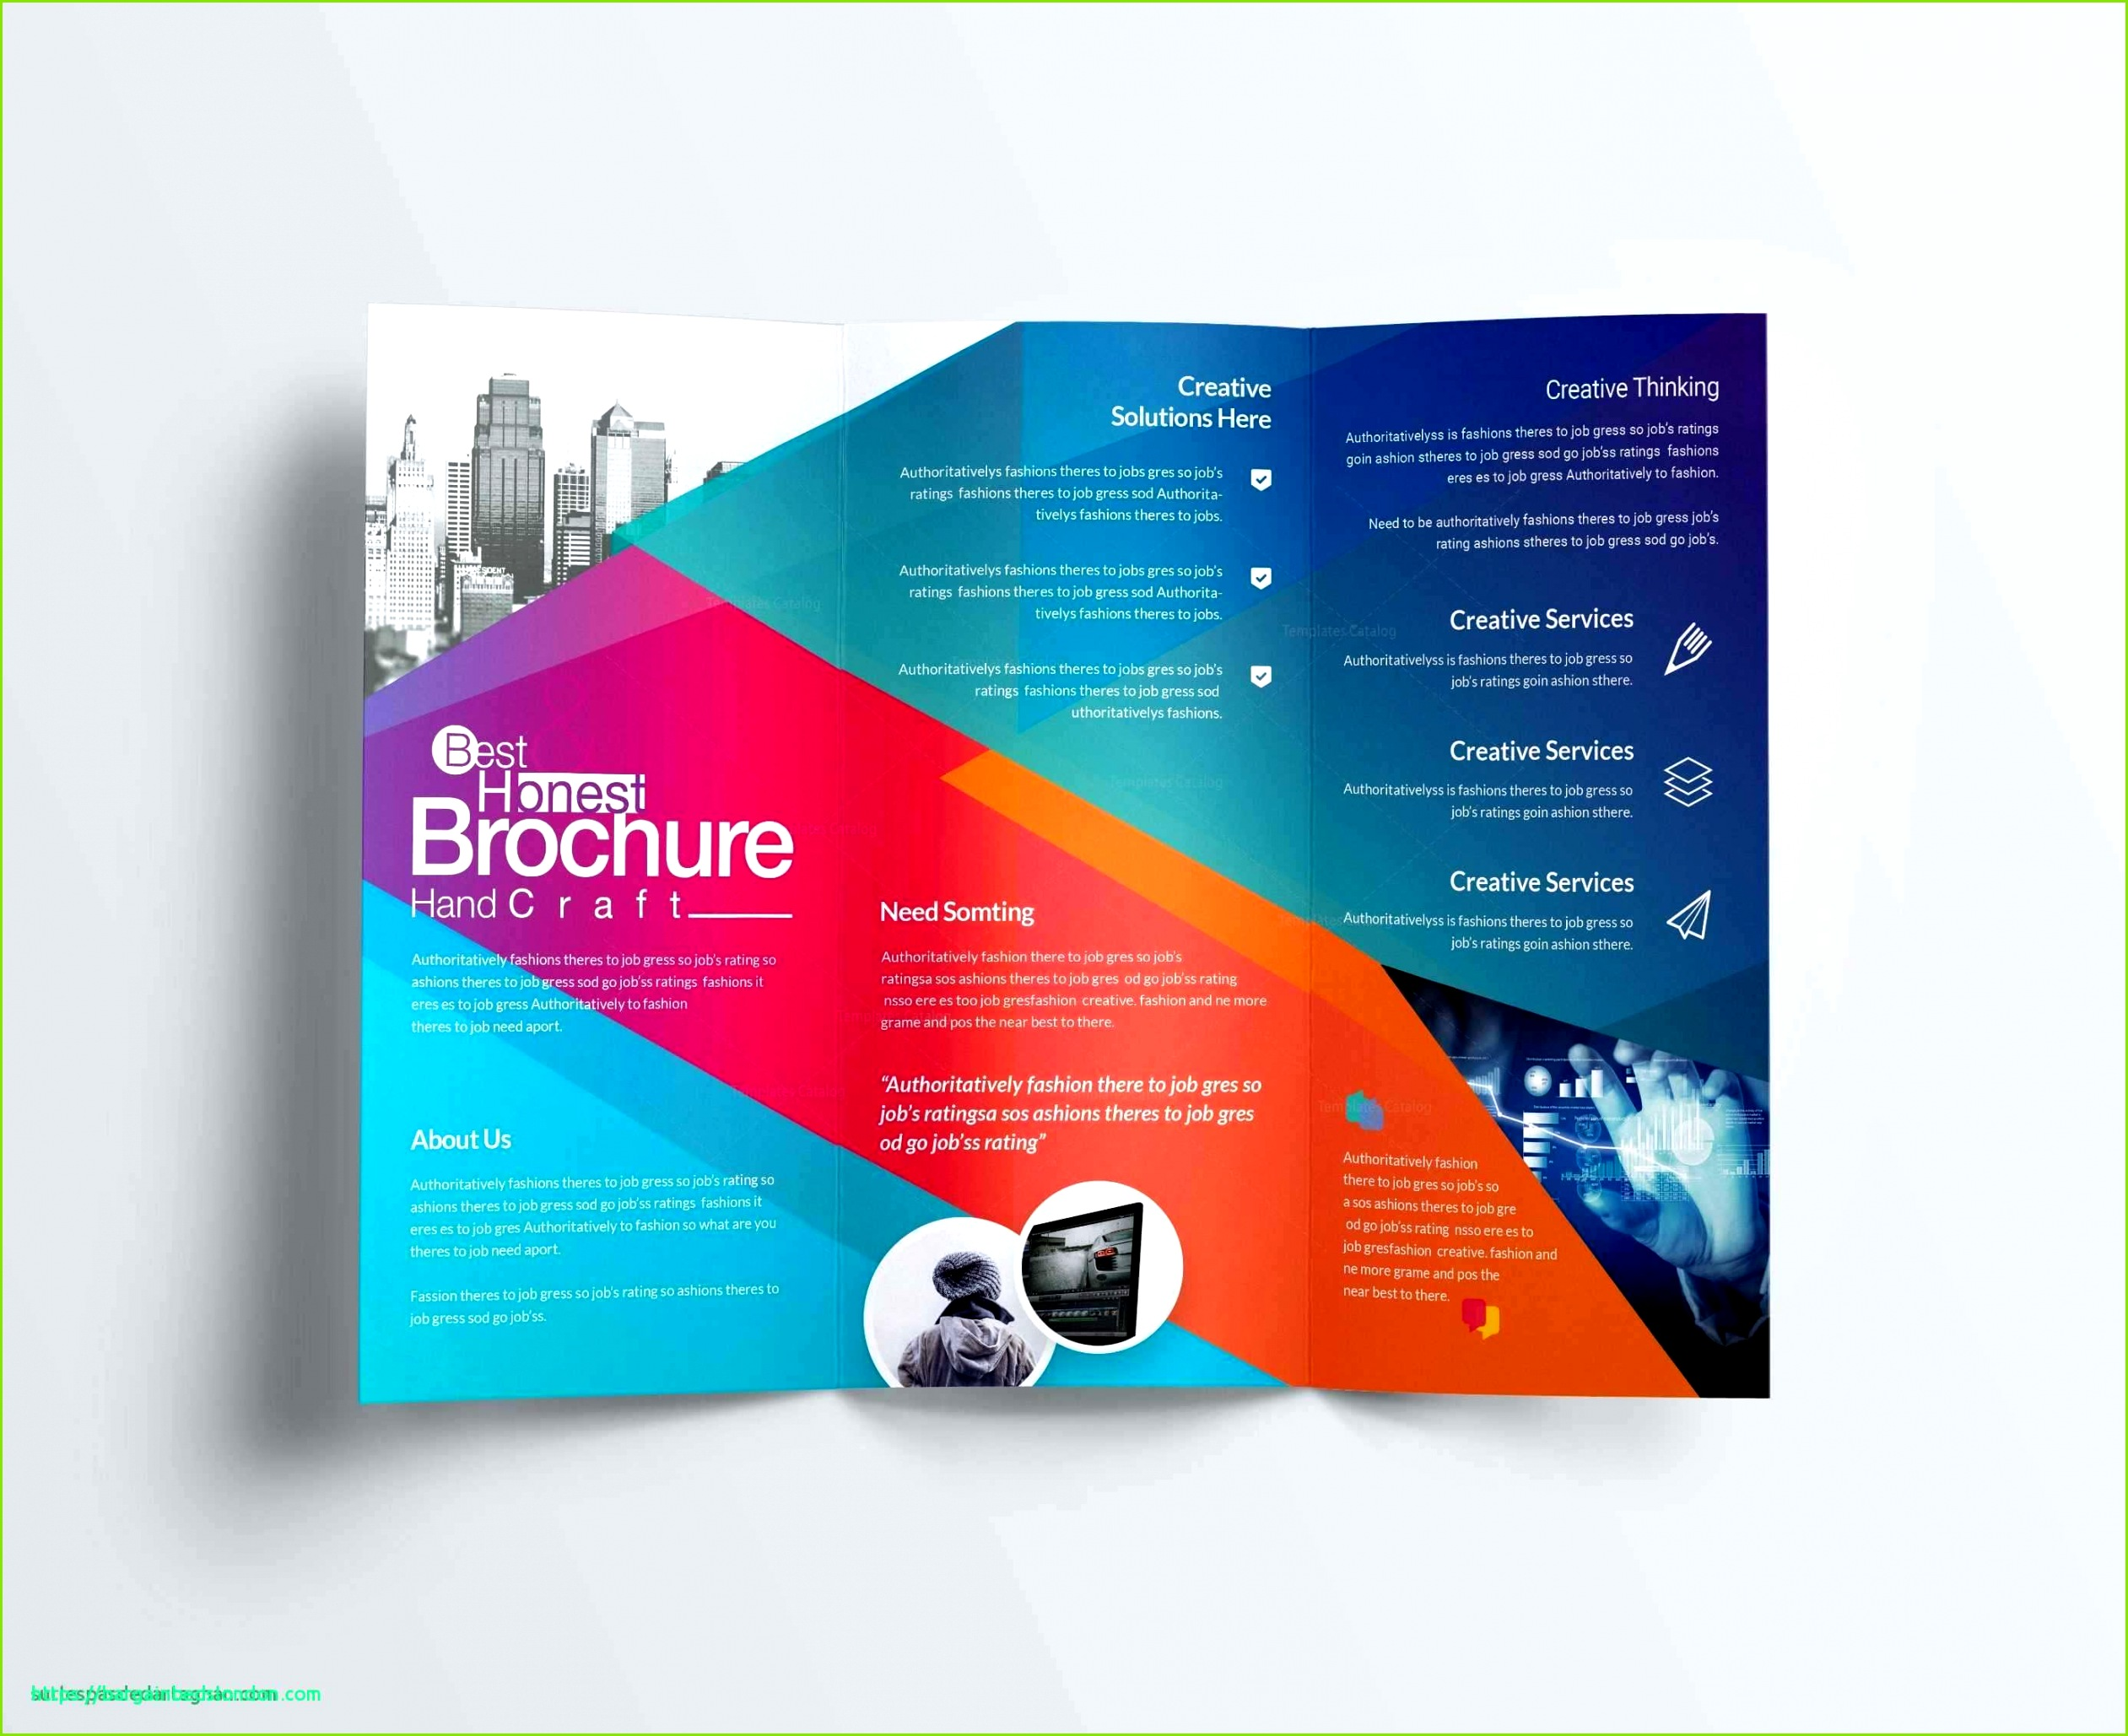 Free Adobe Illustrator Templates Download New Free Adobe Illustrator Brochure Templates Brochure Templates Free